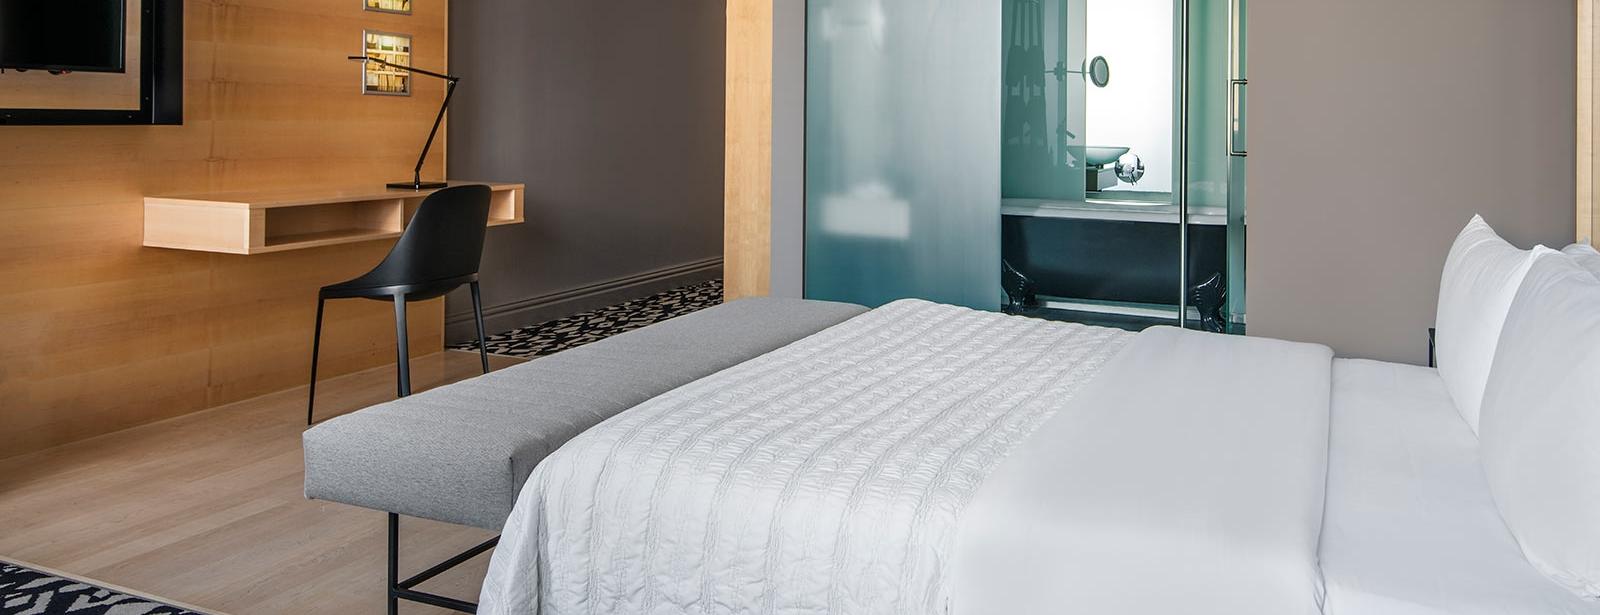 Deluxe Room - Le Méridien Hotel Vienna - Guests are invited to relax in bed, in the bath tub or by watching tv